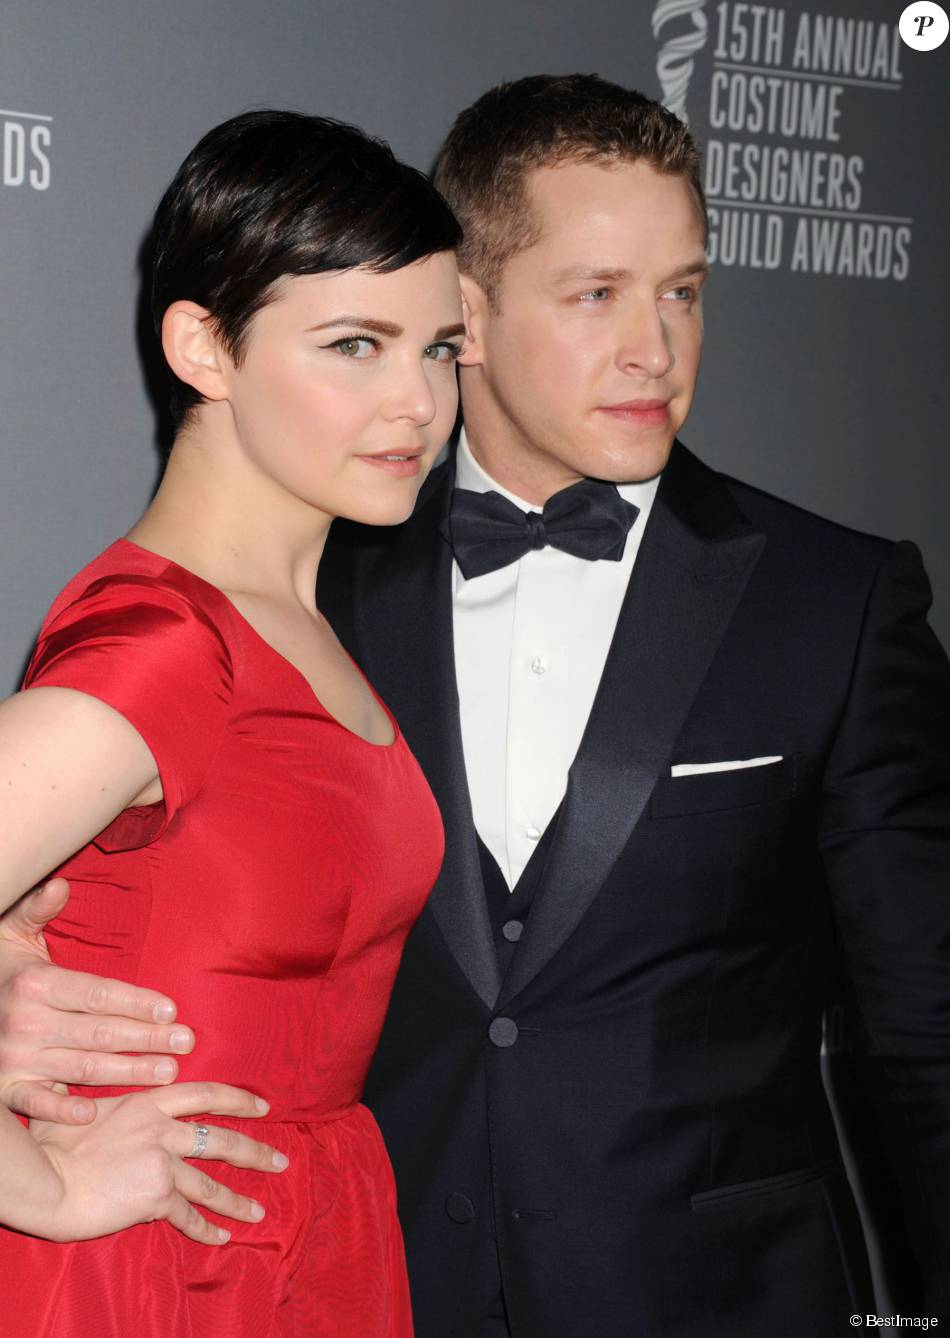 Ginnifer Goodwin te Josh Dallas - Février 2013